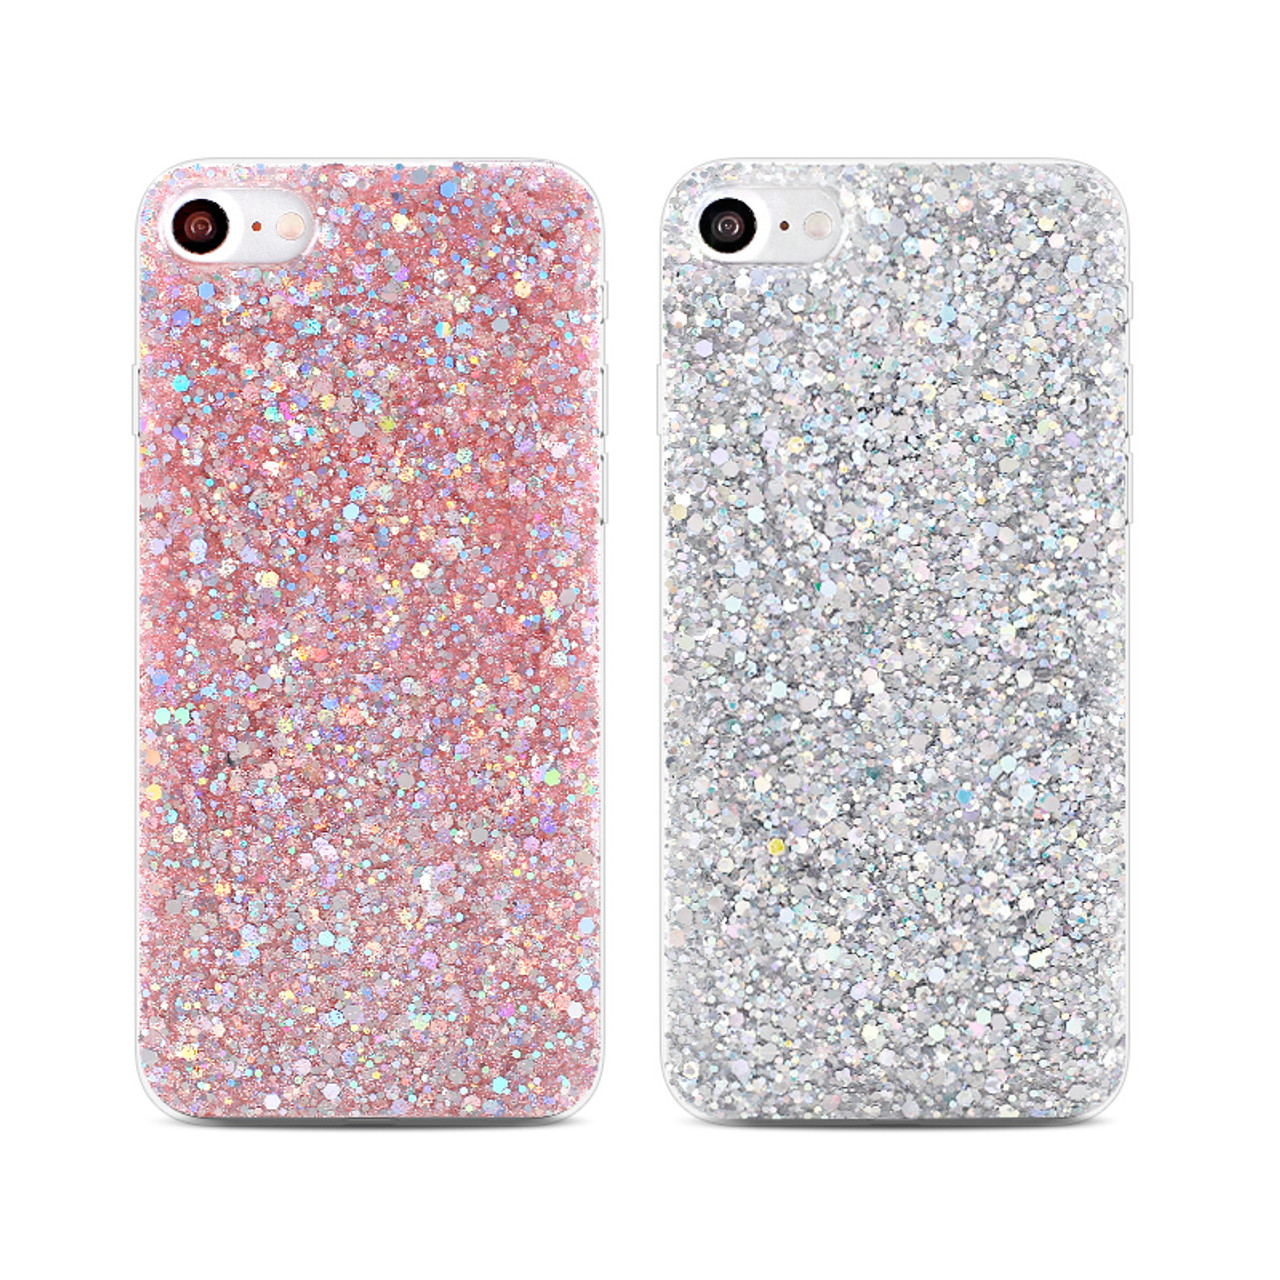 promo code 78d91 3bf18 QINUO Silicone Bling Powder Soft Case For iPhone 5 5S 7 6 Plus Shinning  Glitter Phone Cover for iPhone 8 7 6 6s Plus Cases Shell